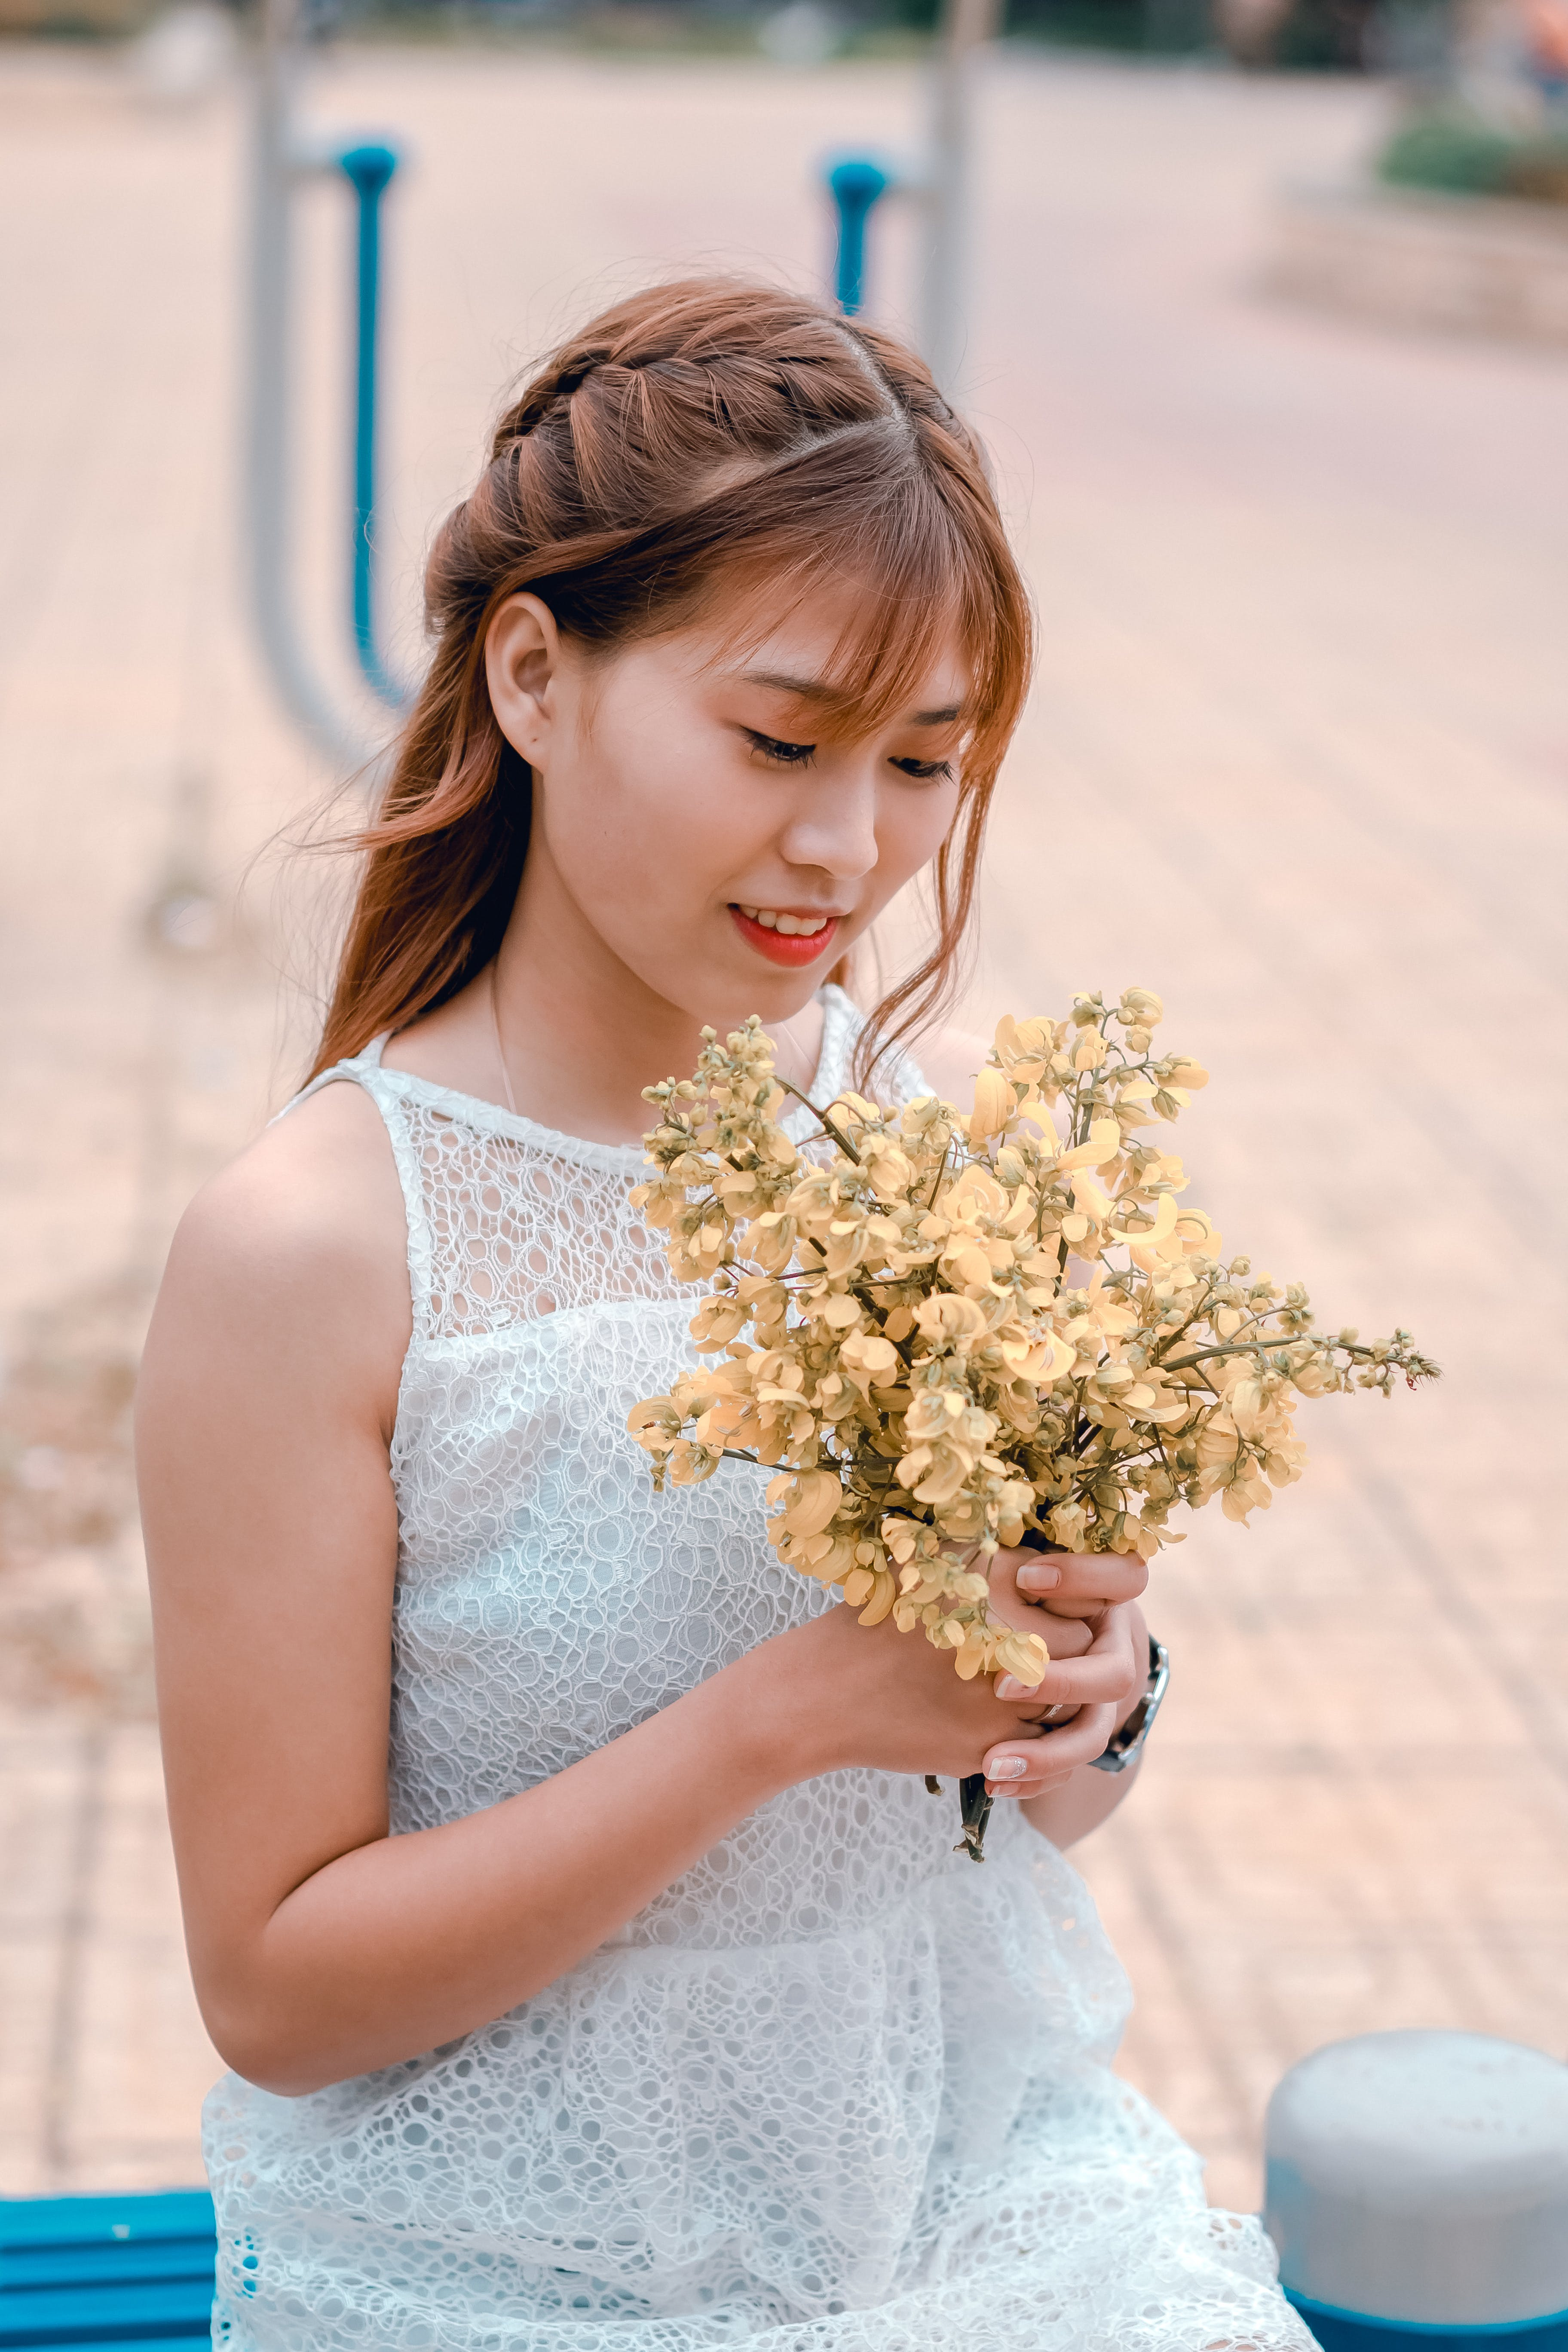 Woman Wearing White Lace Dress Holding Yellow Flower Bouquet